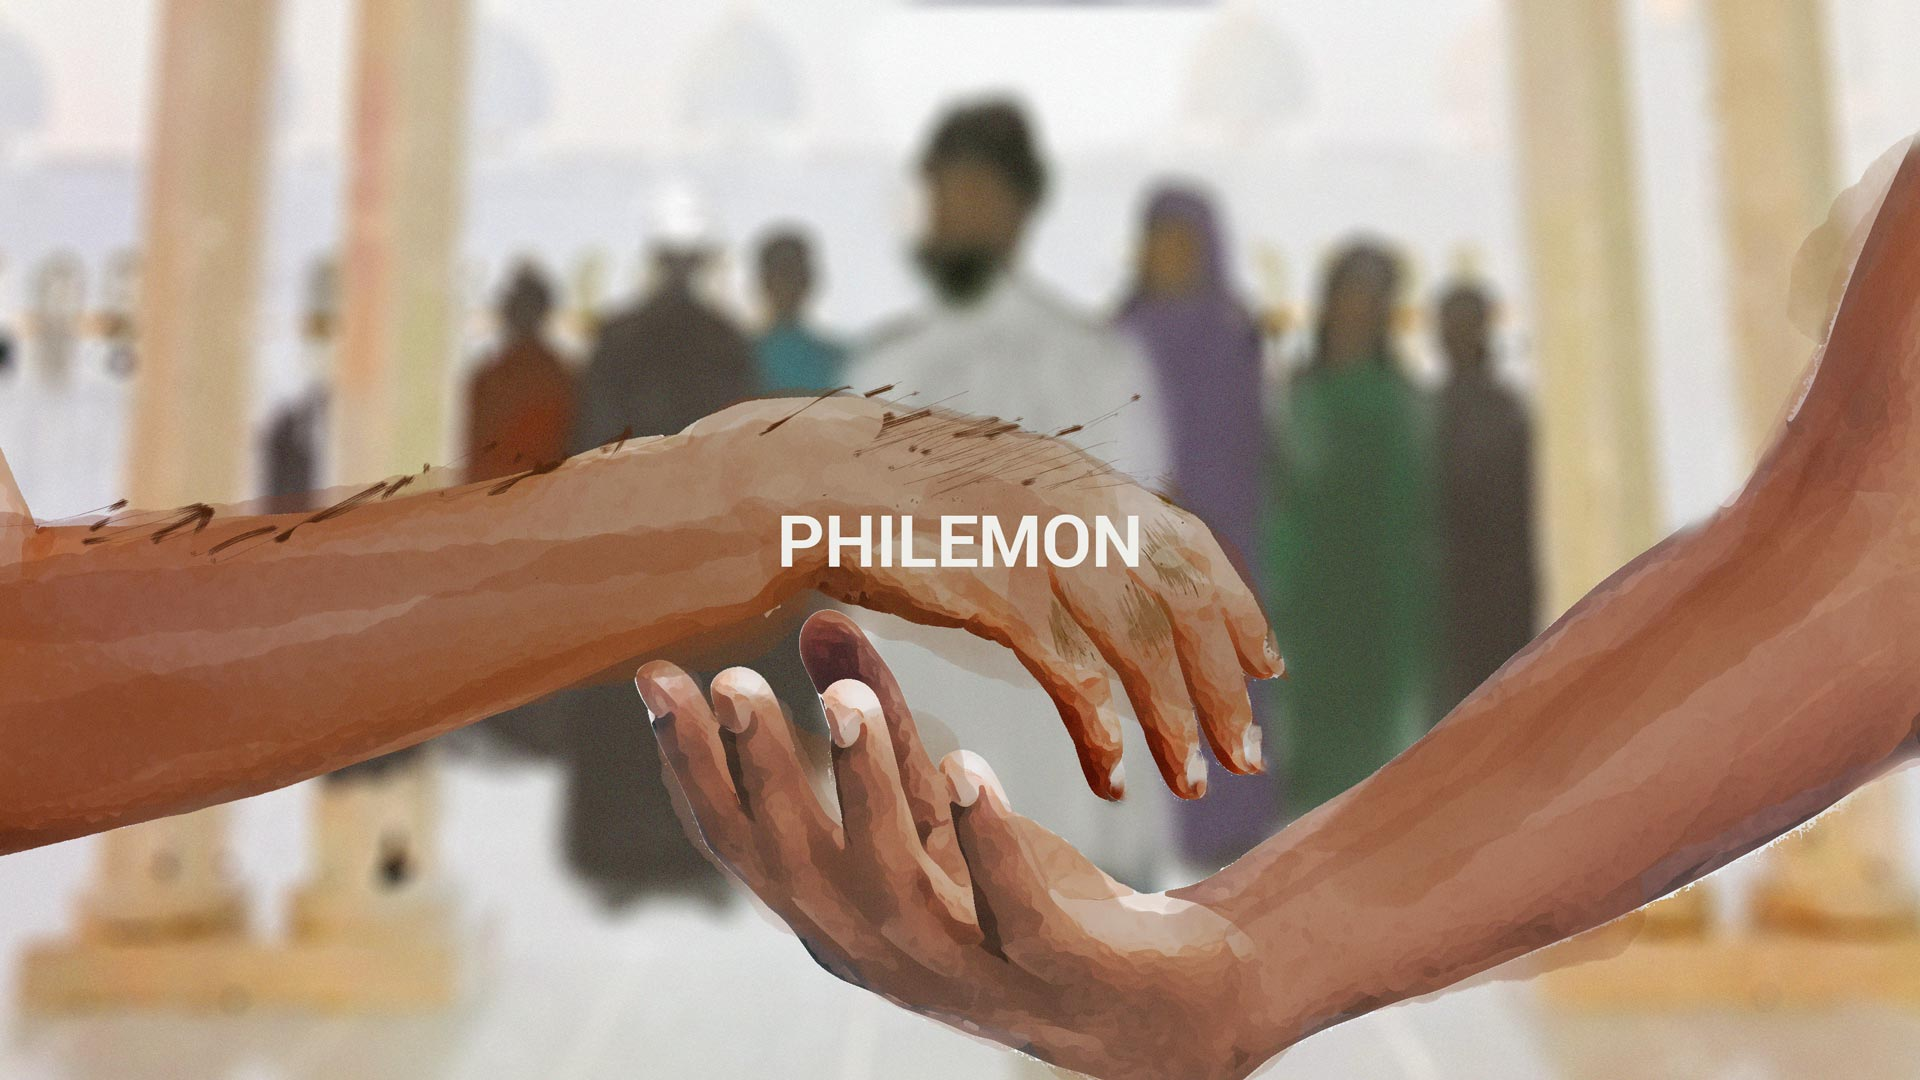 philemon_1_main.jpg